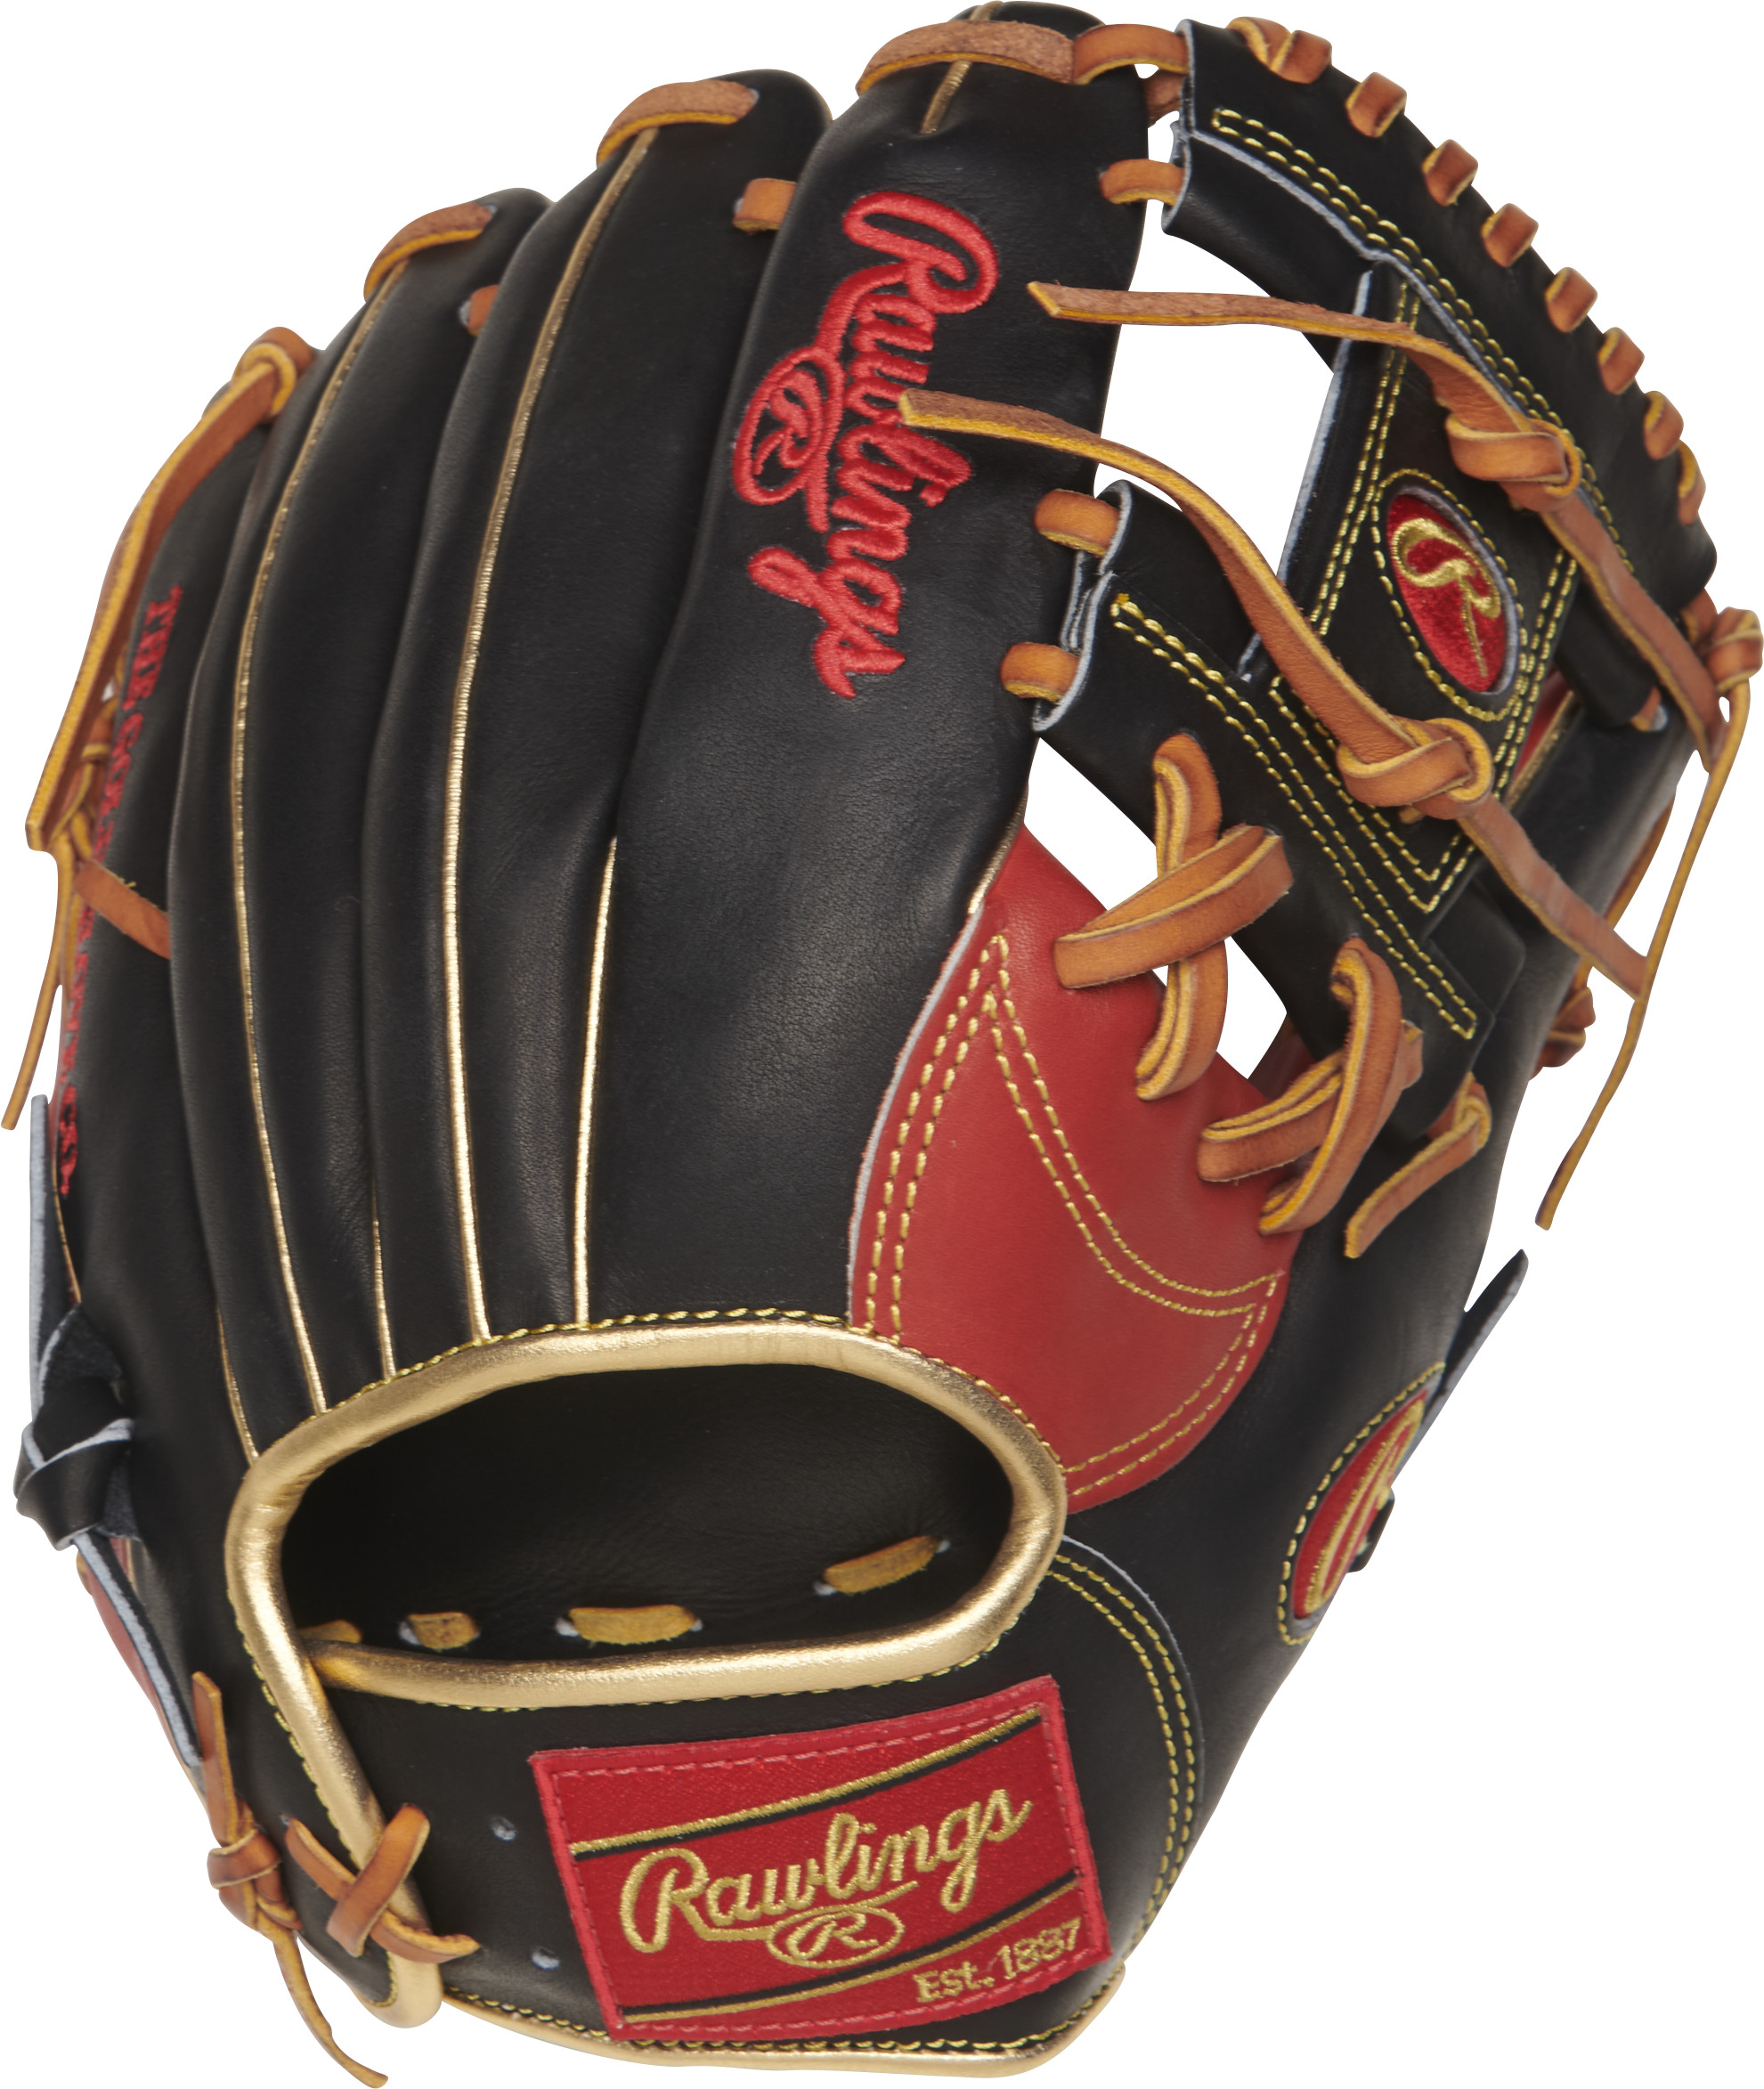 http://www.bestbatdeals.com/images/rawlingsgloves/PRONp4-2sBG-2.jpg